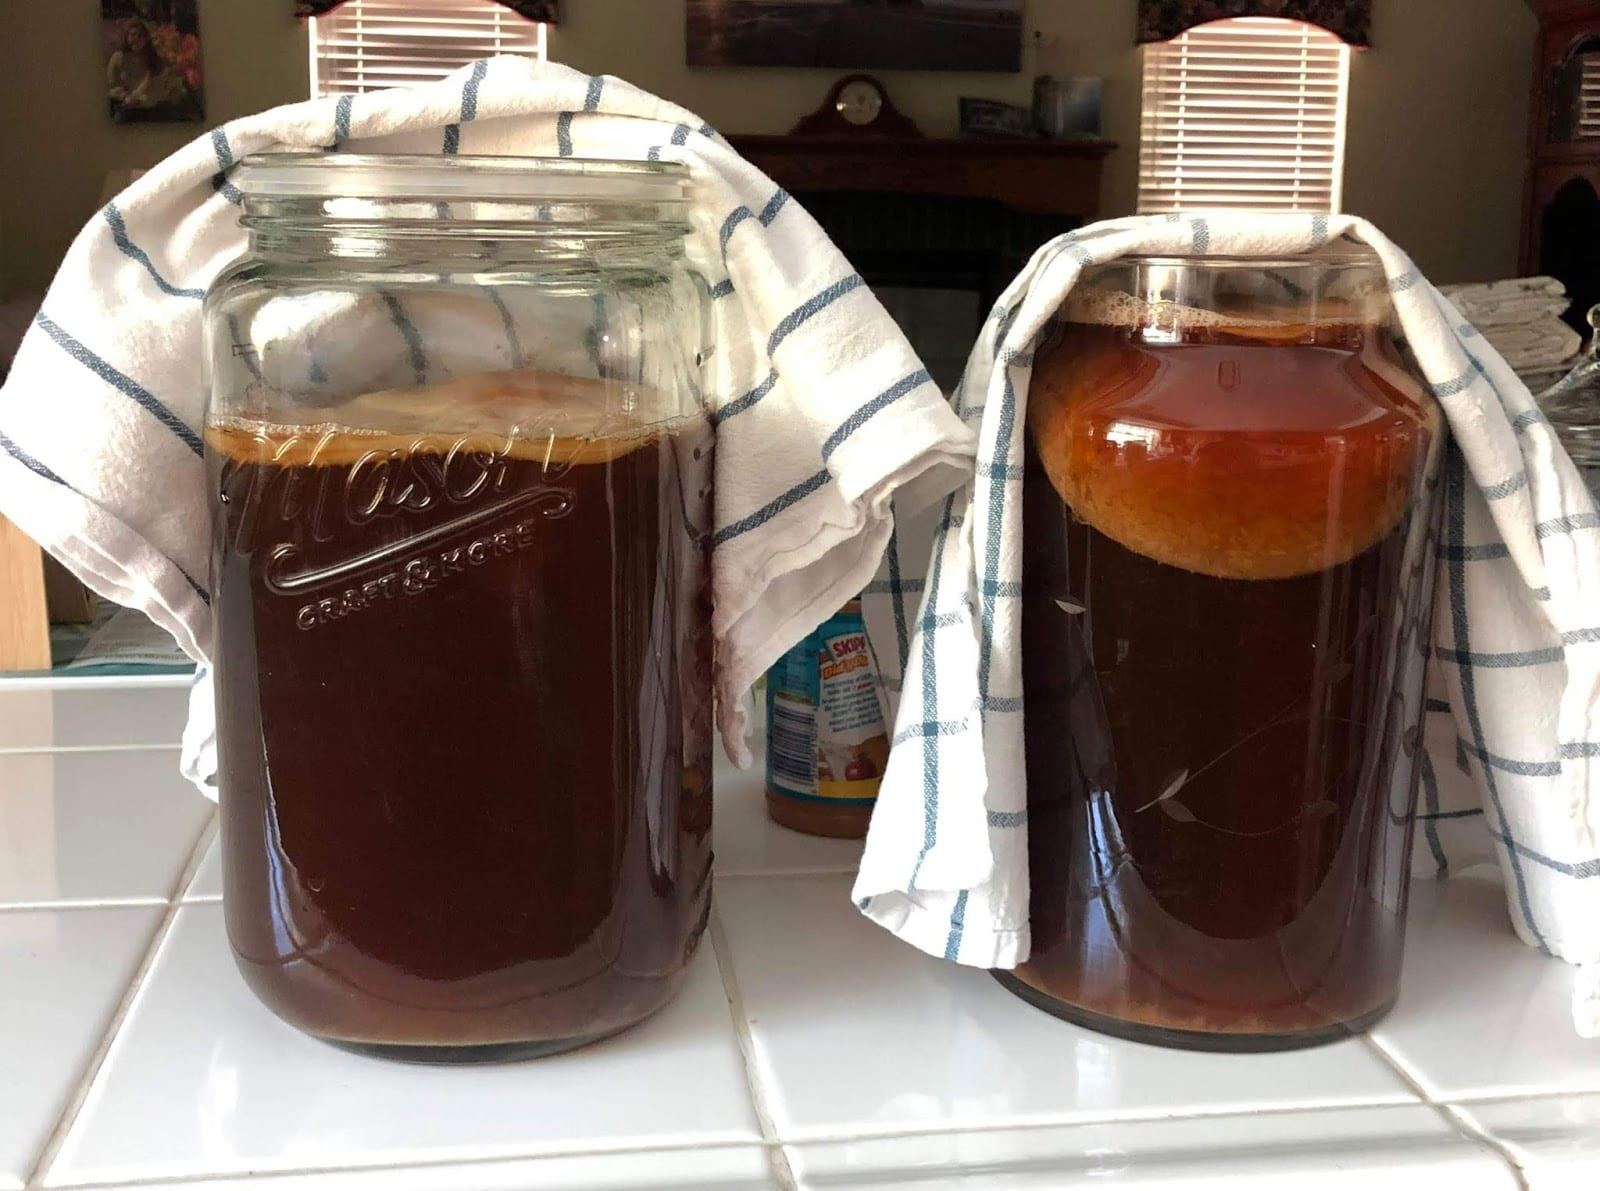 Two jars of kombucha with towels on the top.